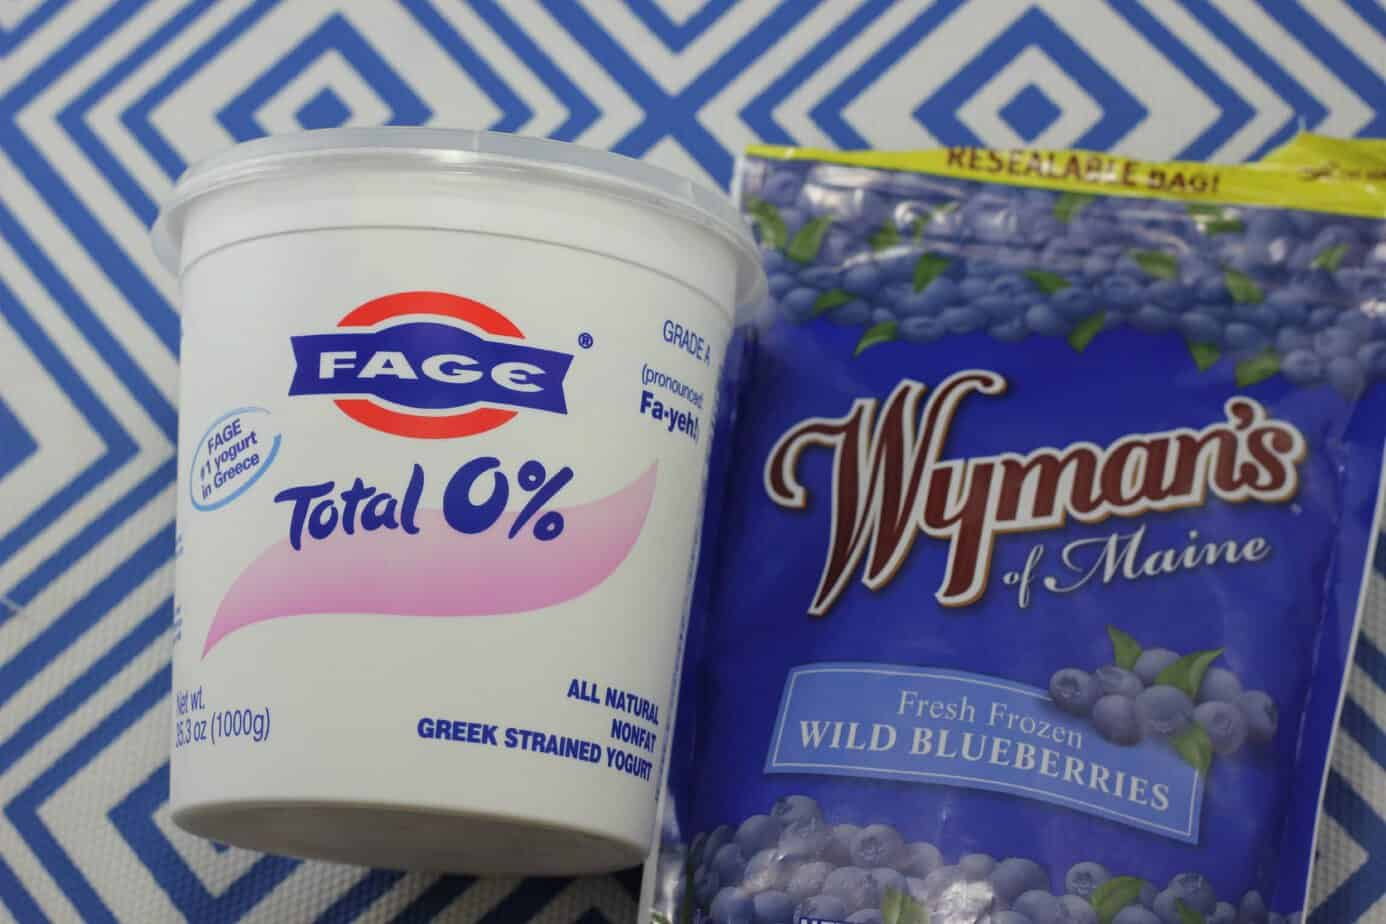 fage greek yogurt and wild blueberries